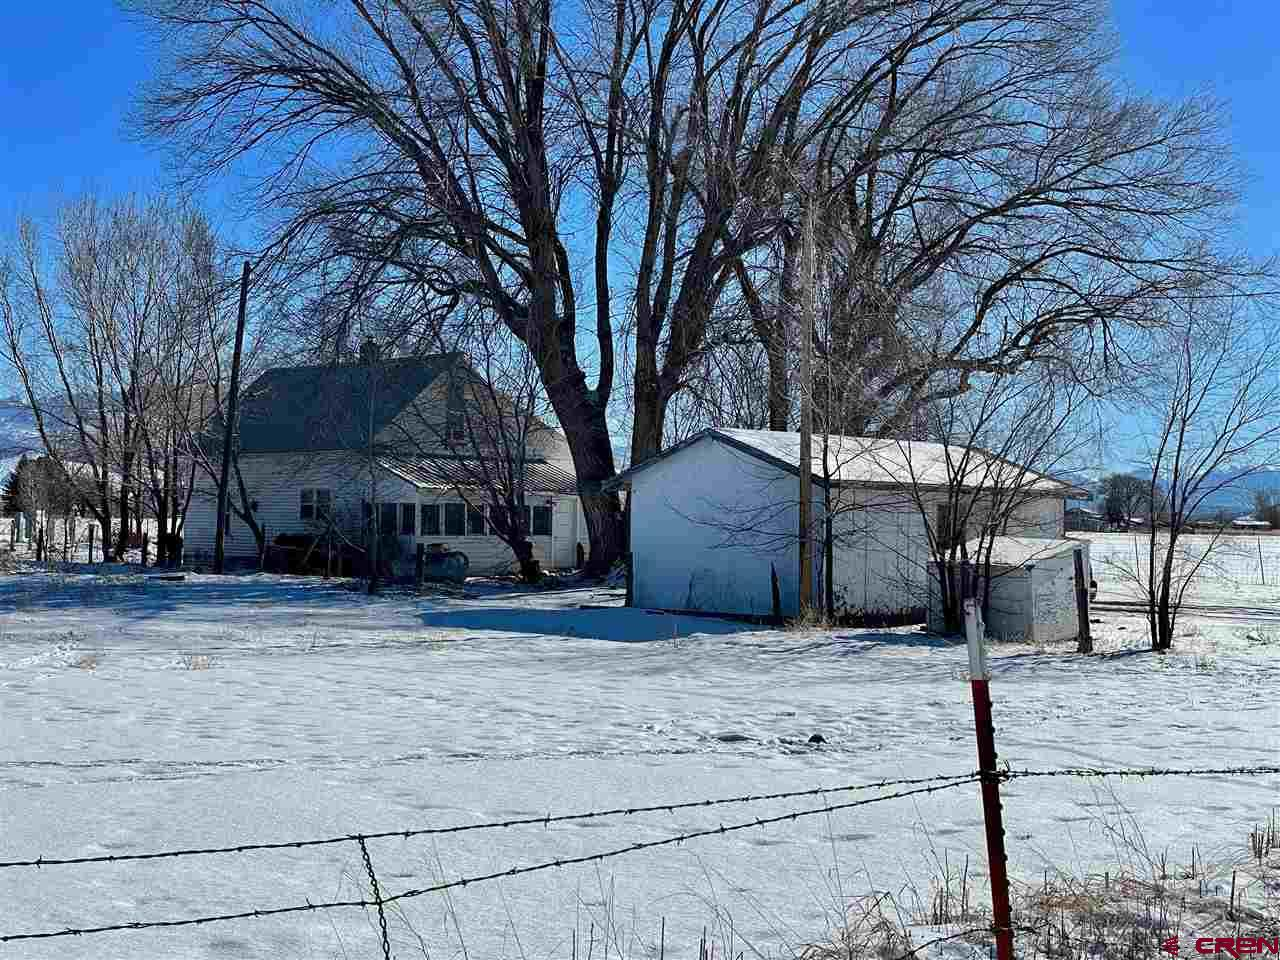 Only Four Miles South Of Montrose, entering from a separate acceleration/ deceleration lane, quaint farmhouse on over 12 acres. This 3-bedroom, 1 bath farmhouse has so many different options. Possibilities are in the eye of the buyer. Use this property as your own home with space galore on the 12.48 acres. Subdivide this fantastic frontage road property and have an income producing rental and possible business sites! Better yet, add this property to the purchase of 18425 6600 road and own two amazing parcels of farm ground, as well as two homes! The possibilities are endless. This property wont last long. Schedule a private showing before it's gone!  This property requires 24 Hour notice before showing.